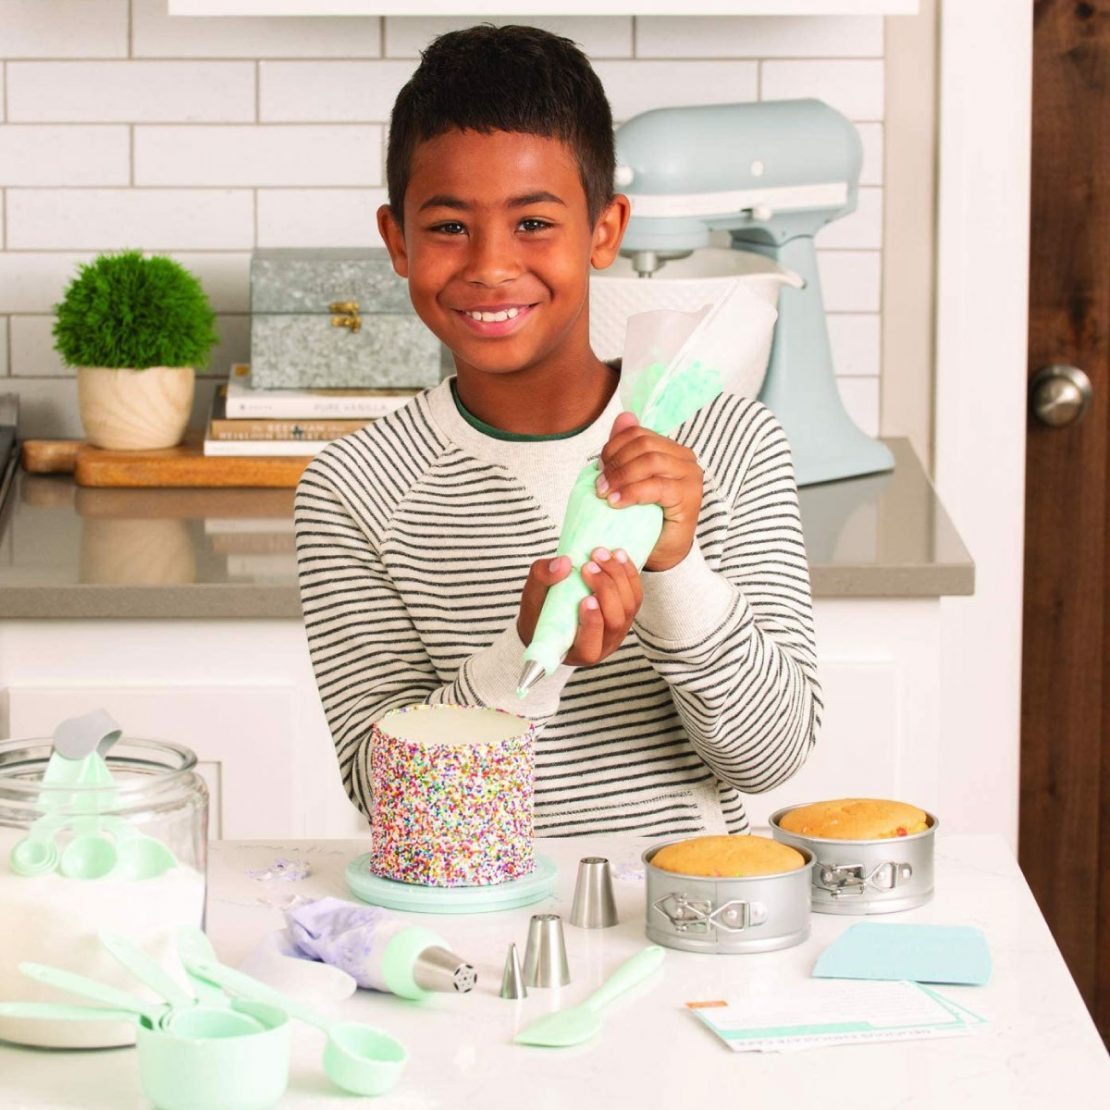 Deluxe Cake Decorating Set from Playful Chef